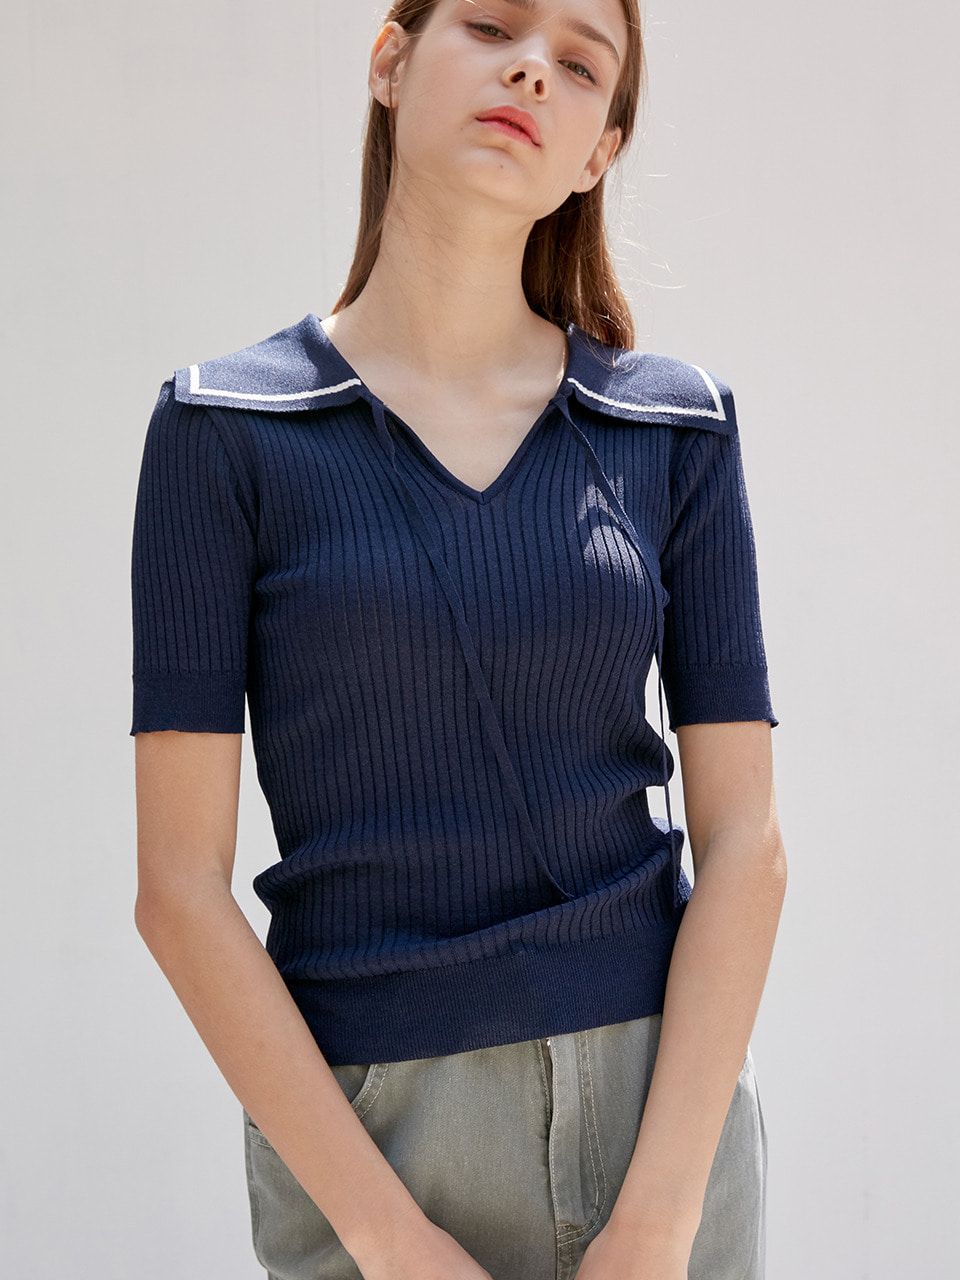 comos'348 v-neck sailor slim knitwear (navy)